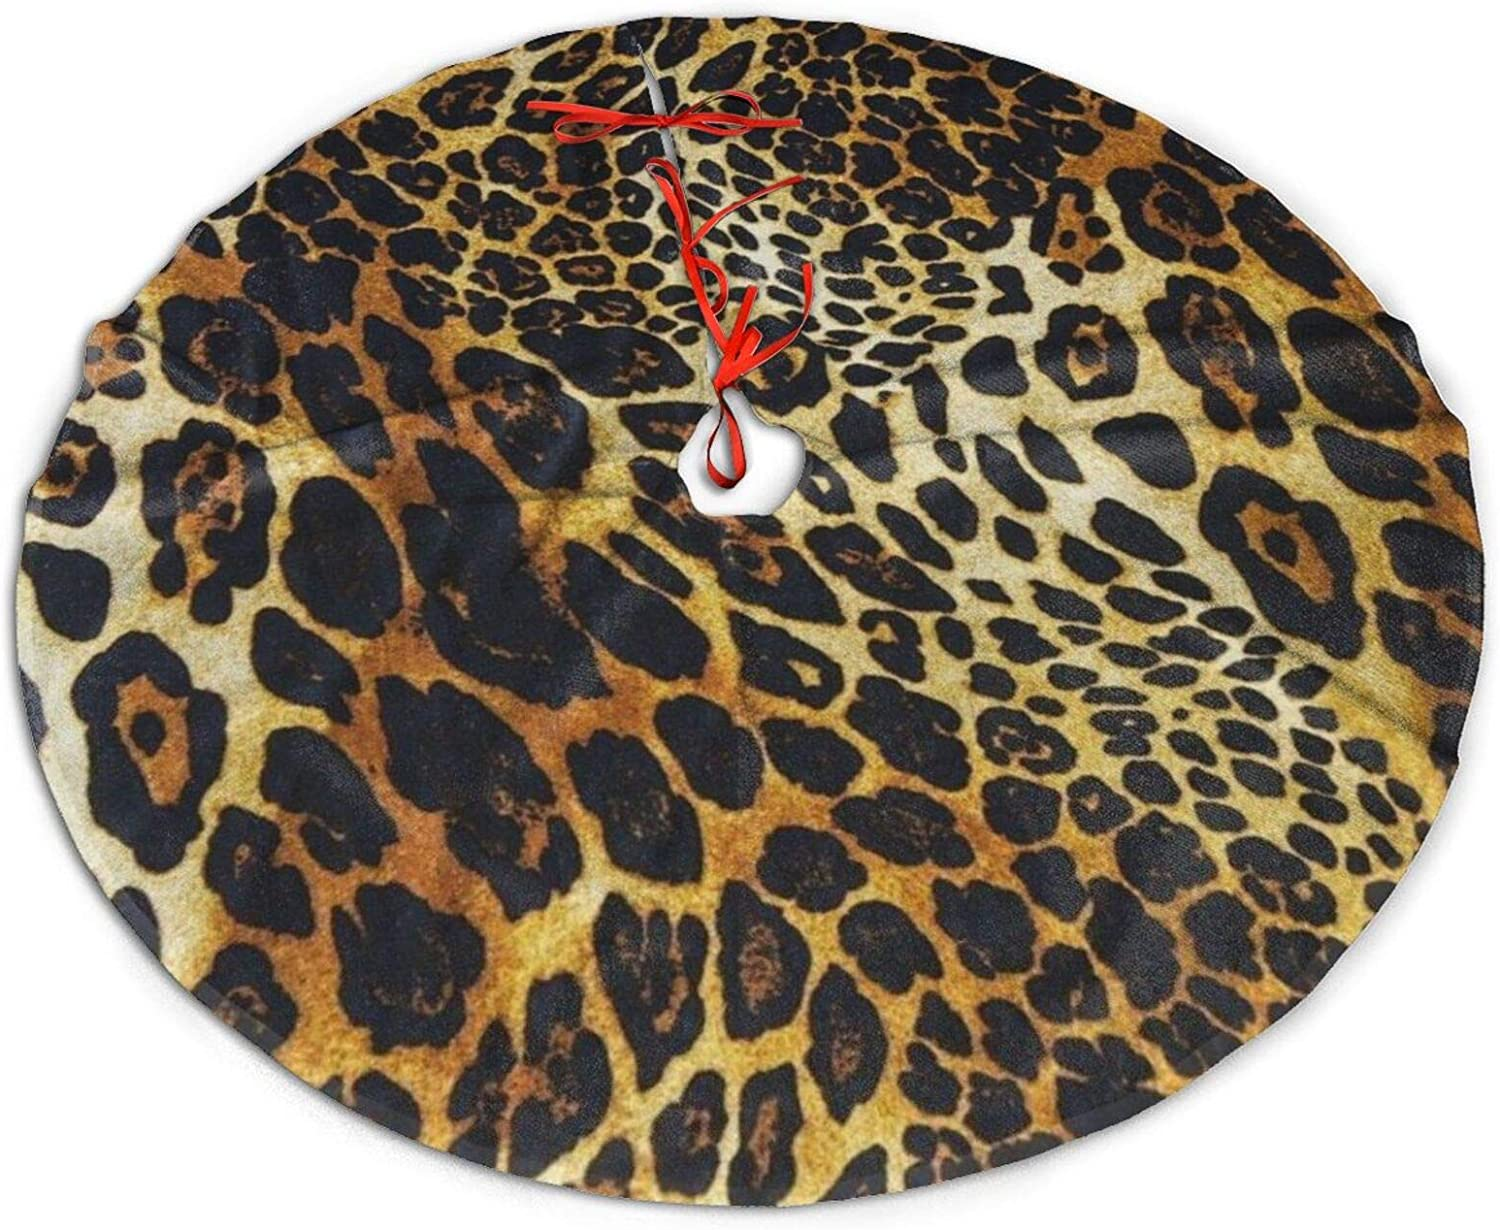 "Boeduc Merry Christmas Tree Skirt for Xmas Holiday Party Supplies Large Tree Mat Decor, Halloween Ornaments 36"" - Leopard Print"